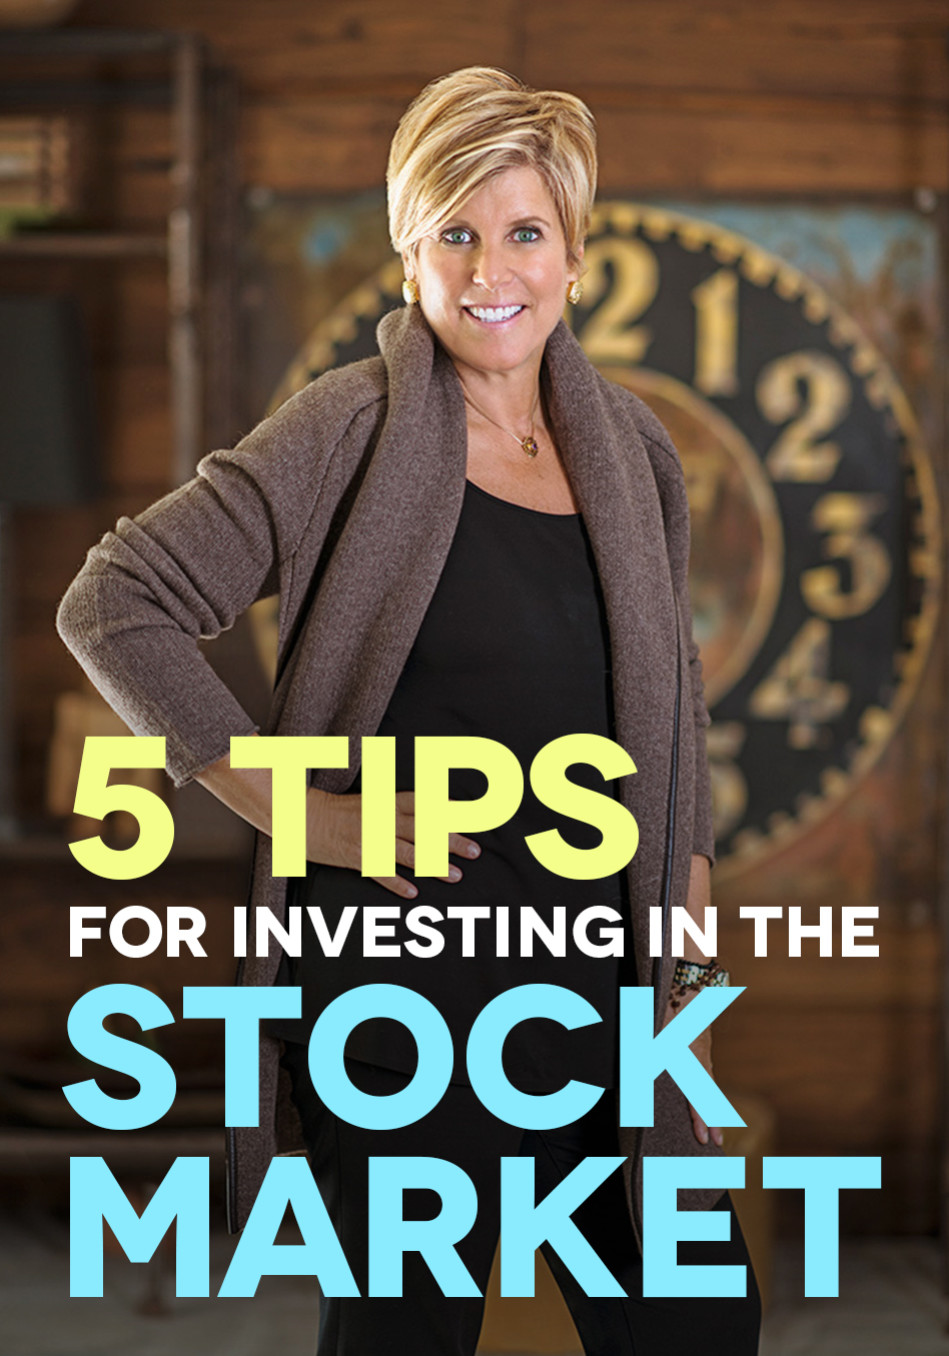 Suze Orman's 5 Tips for Investing in the Stock Market